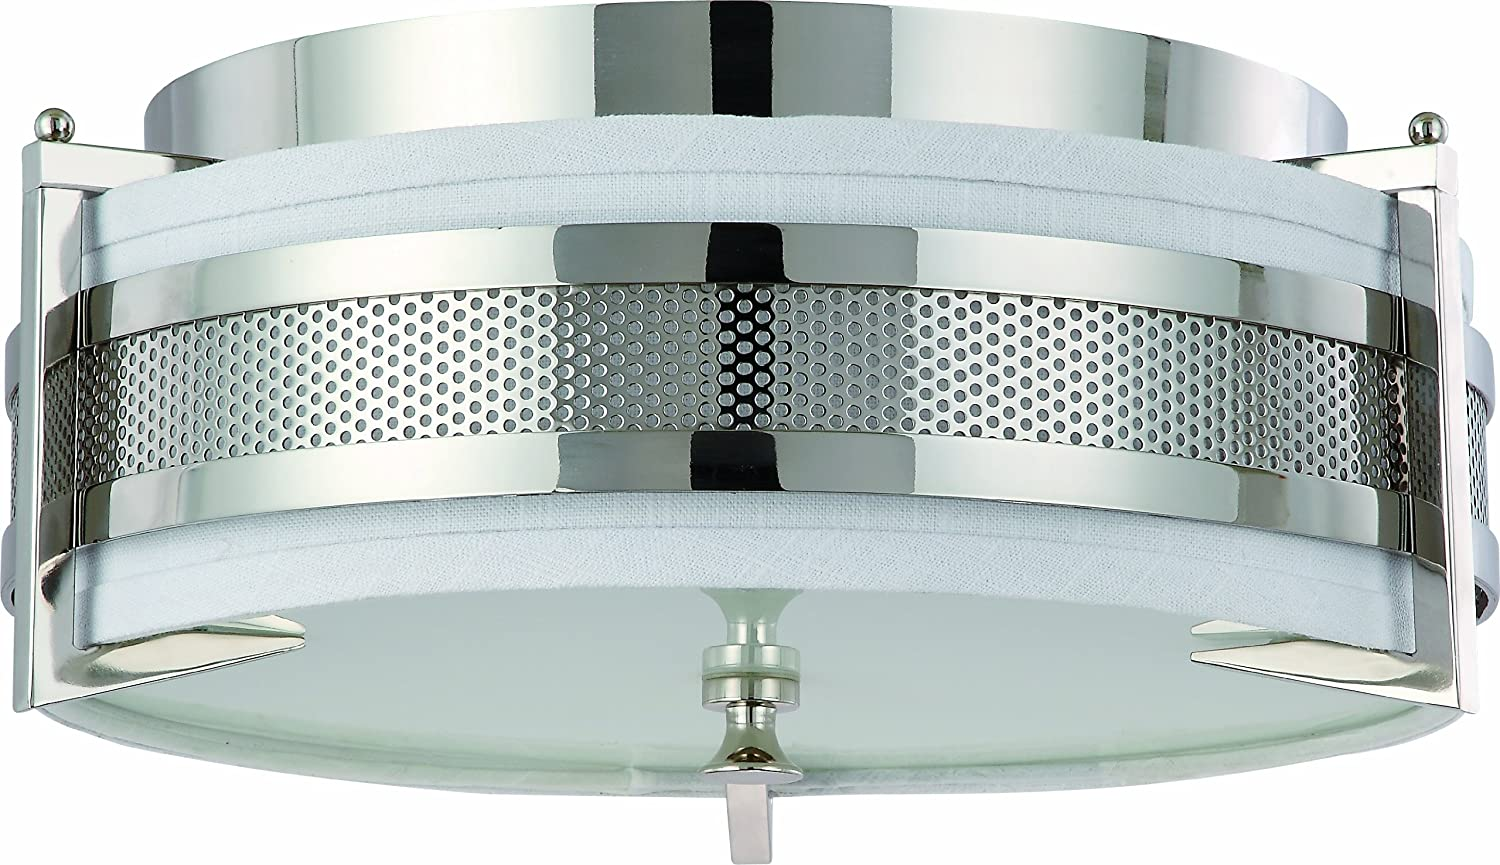 Sylvania 75253 LED Indoor Ceiling Mounted Fixture - Flush Mount ...